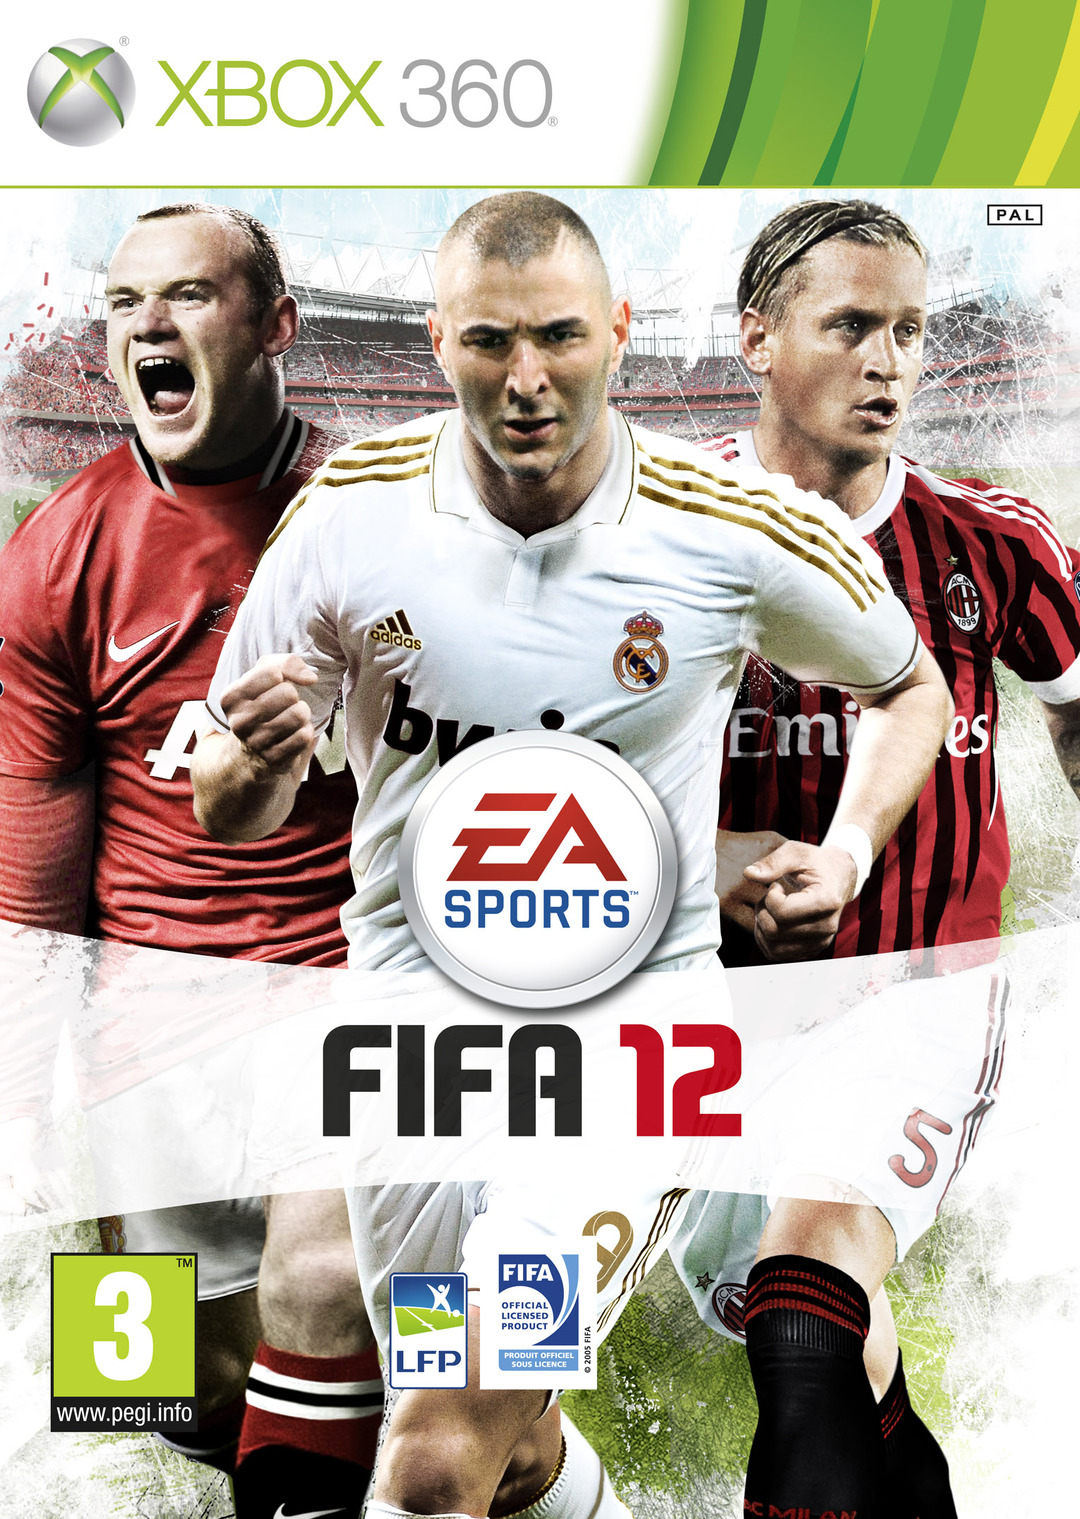 Free download xbox 360 games jumbofiles link and direct link: fifa.